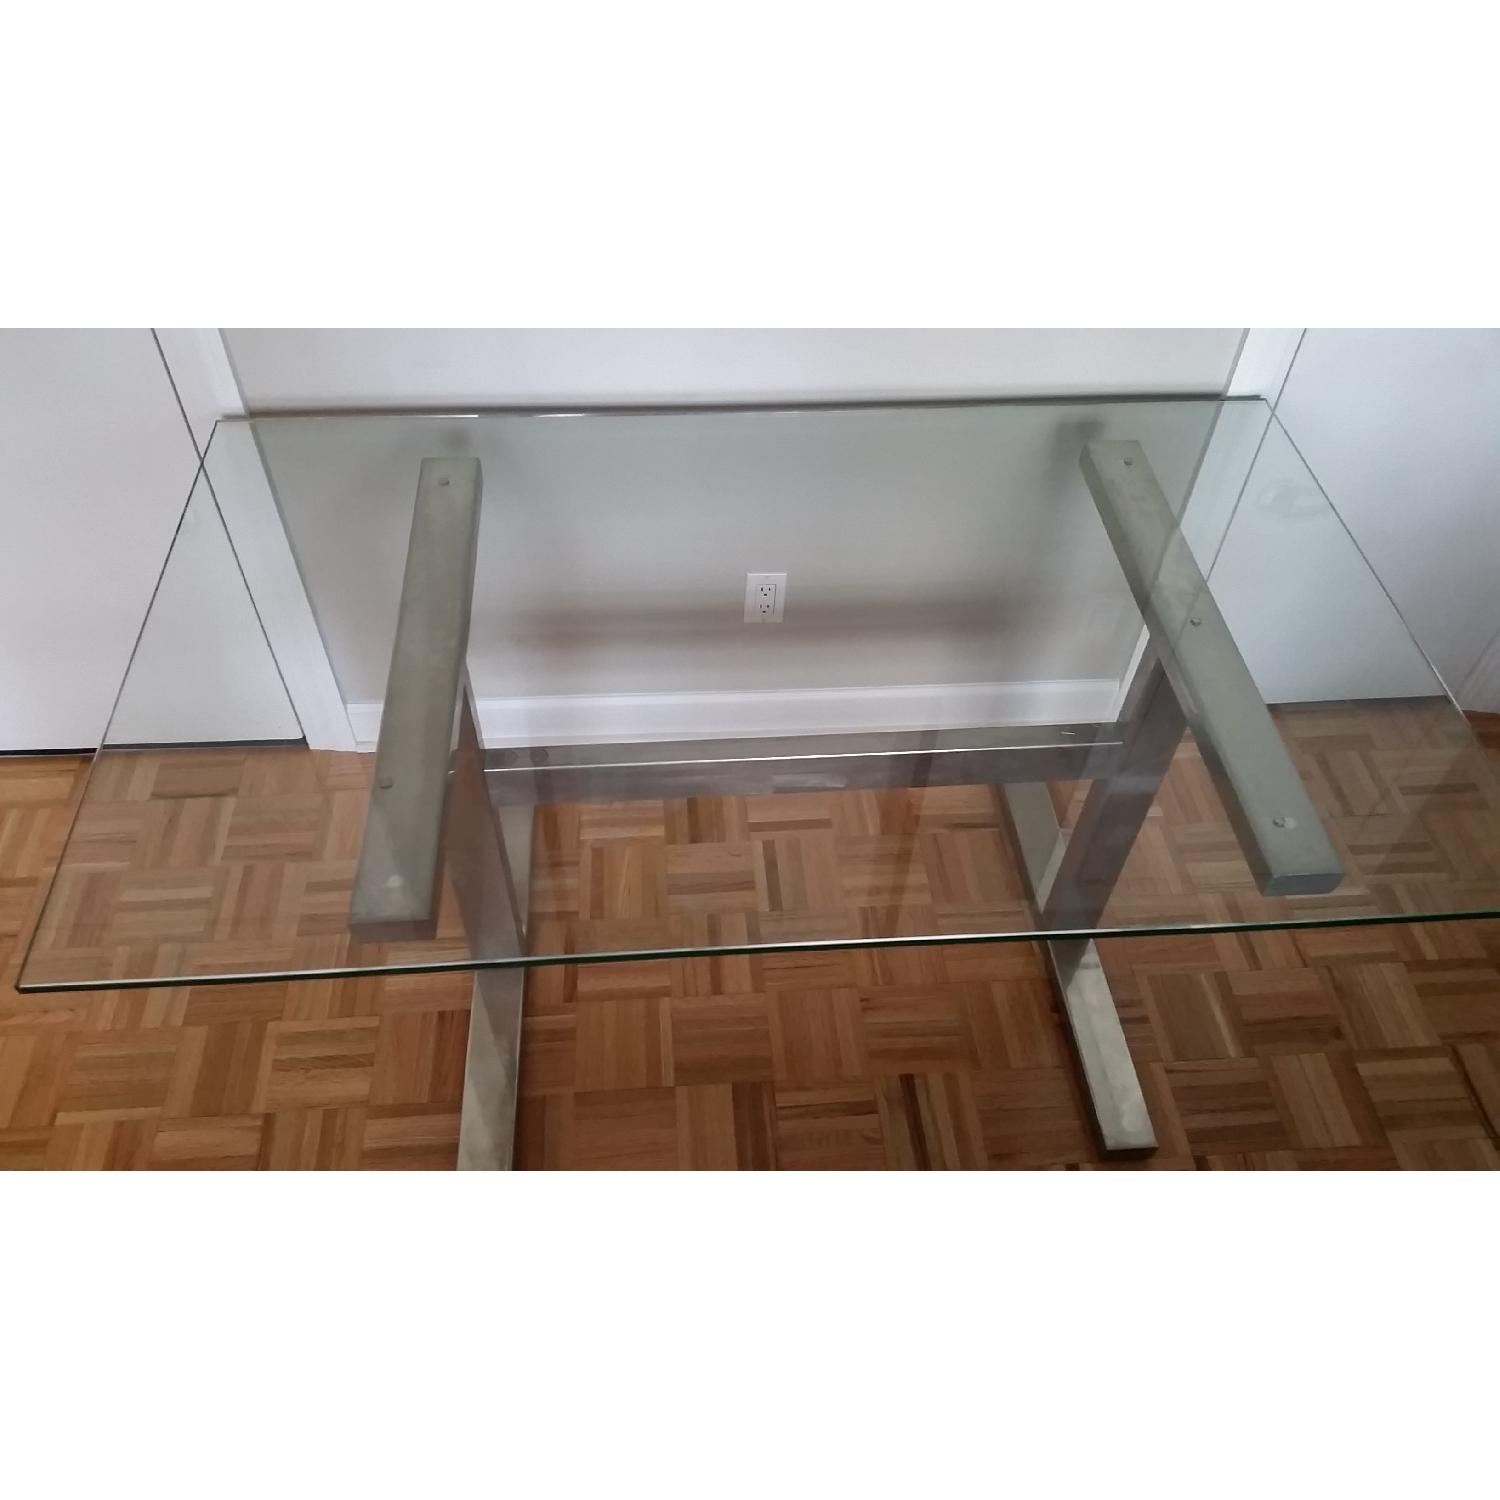 Williams-Sonoma Mercer Glass Table with Metal Frame - image-2